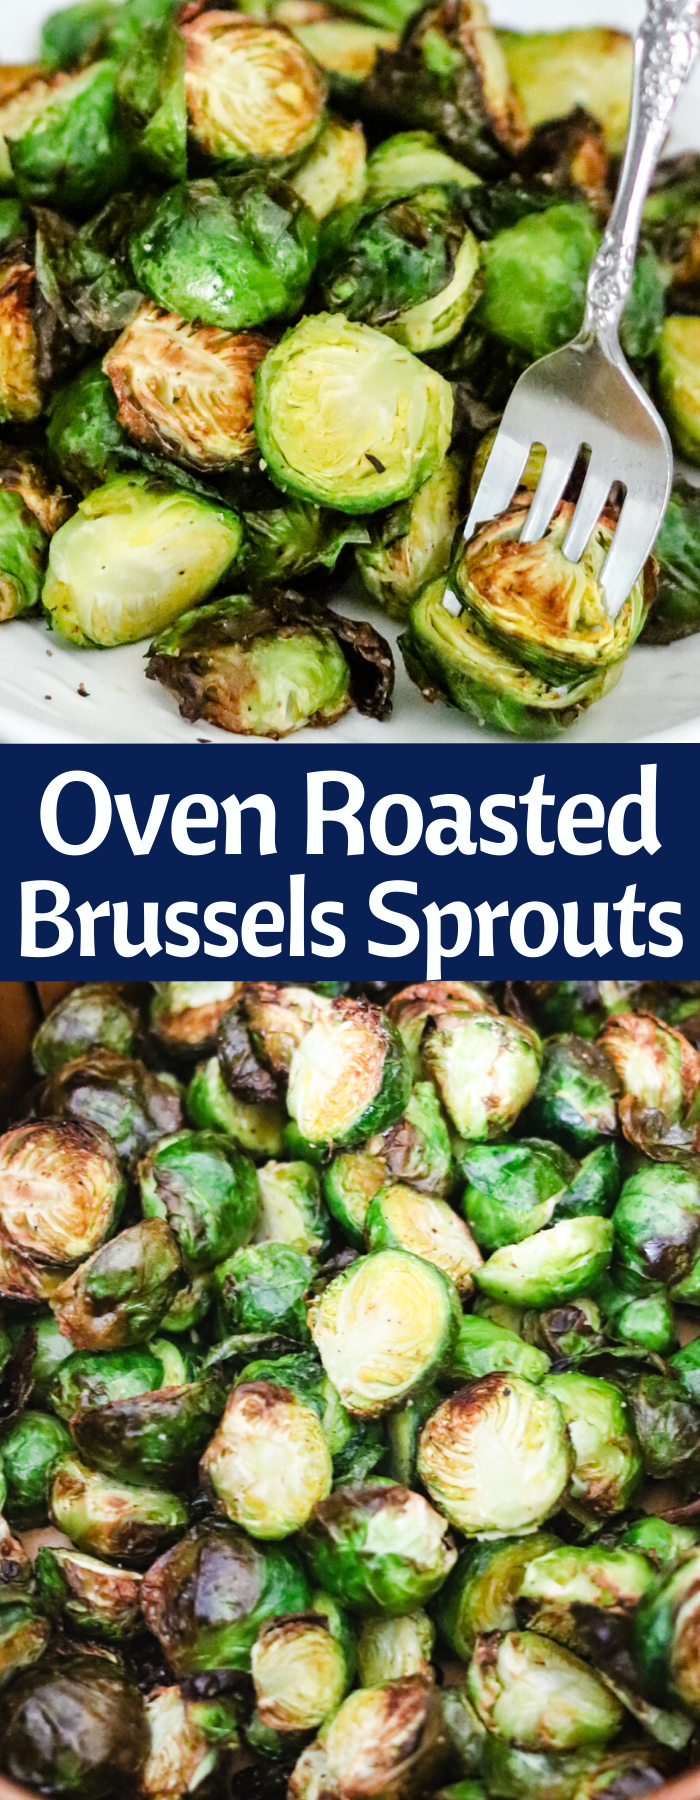 Oven Roasted or Air Fryer Brussels Sprouts will be your new favorite side dish. With only a few ingredients and cooking super quickly, they are easy and delicious! Only 84 calories per serving!